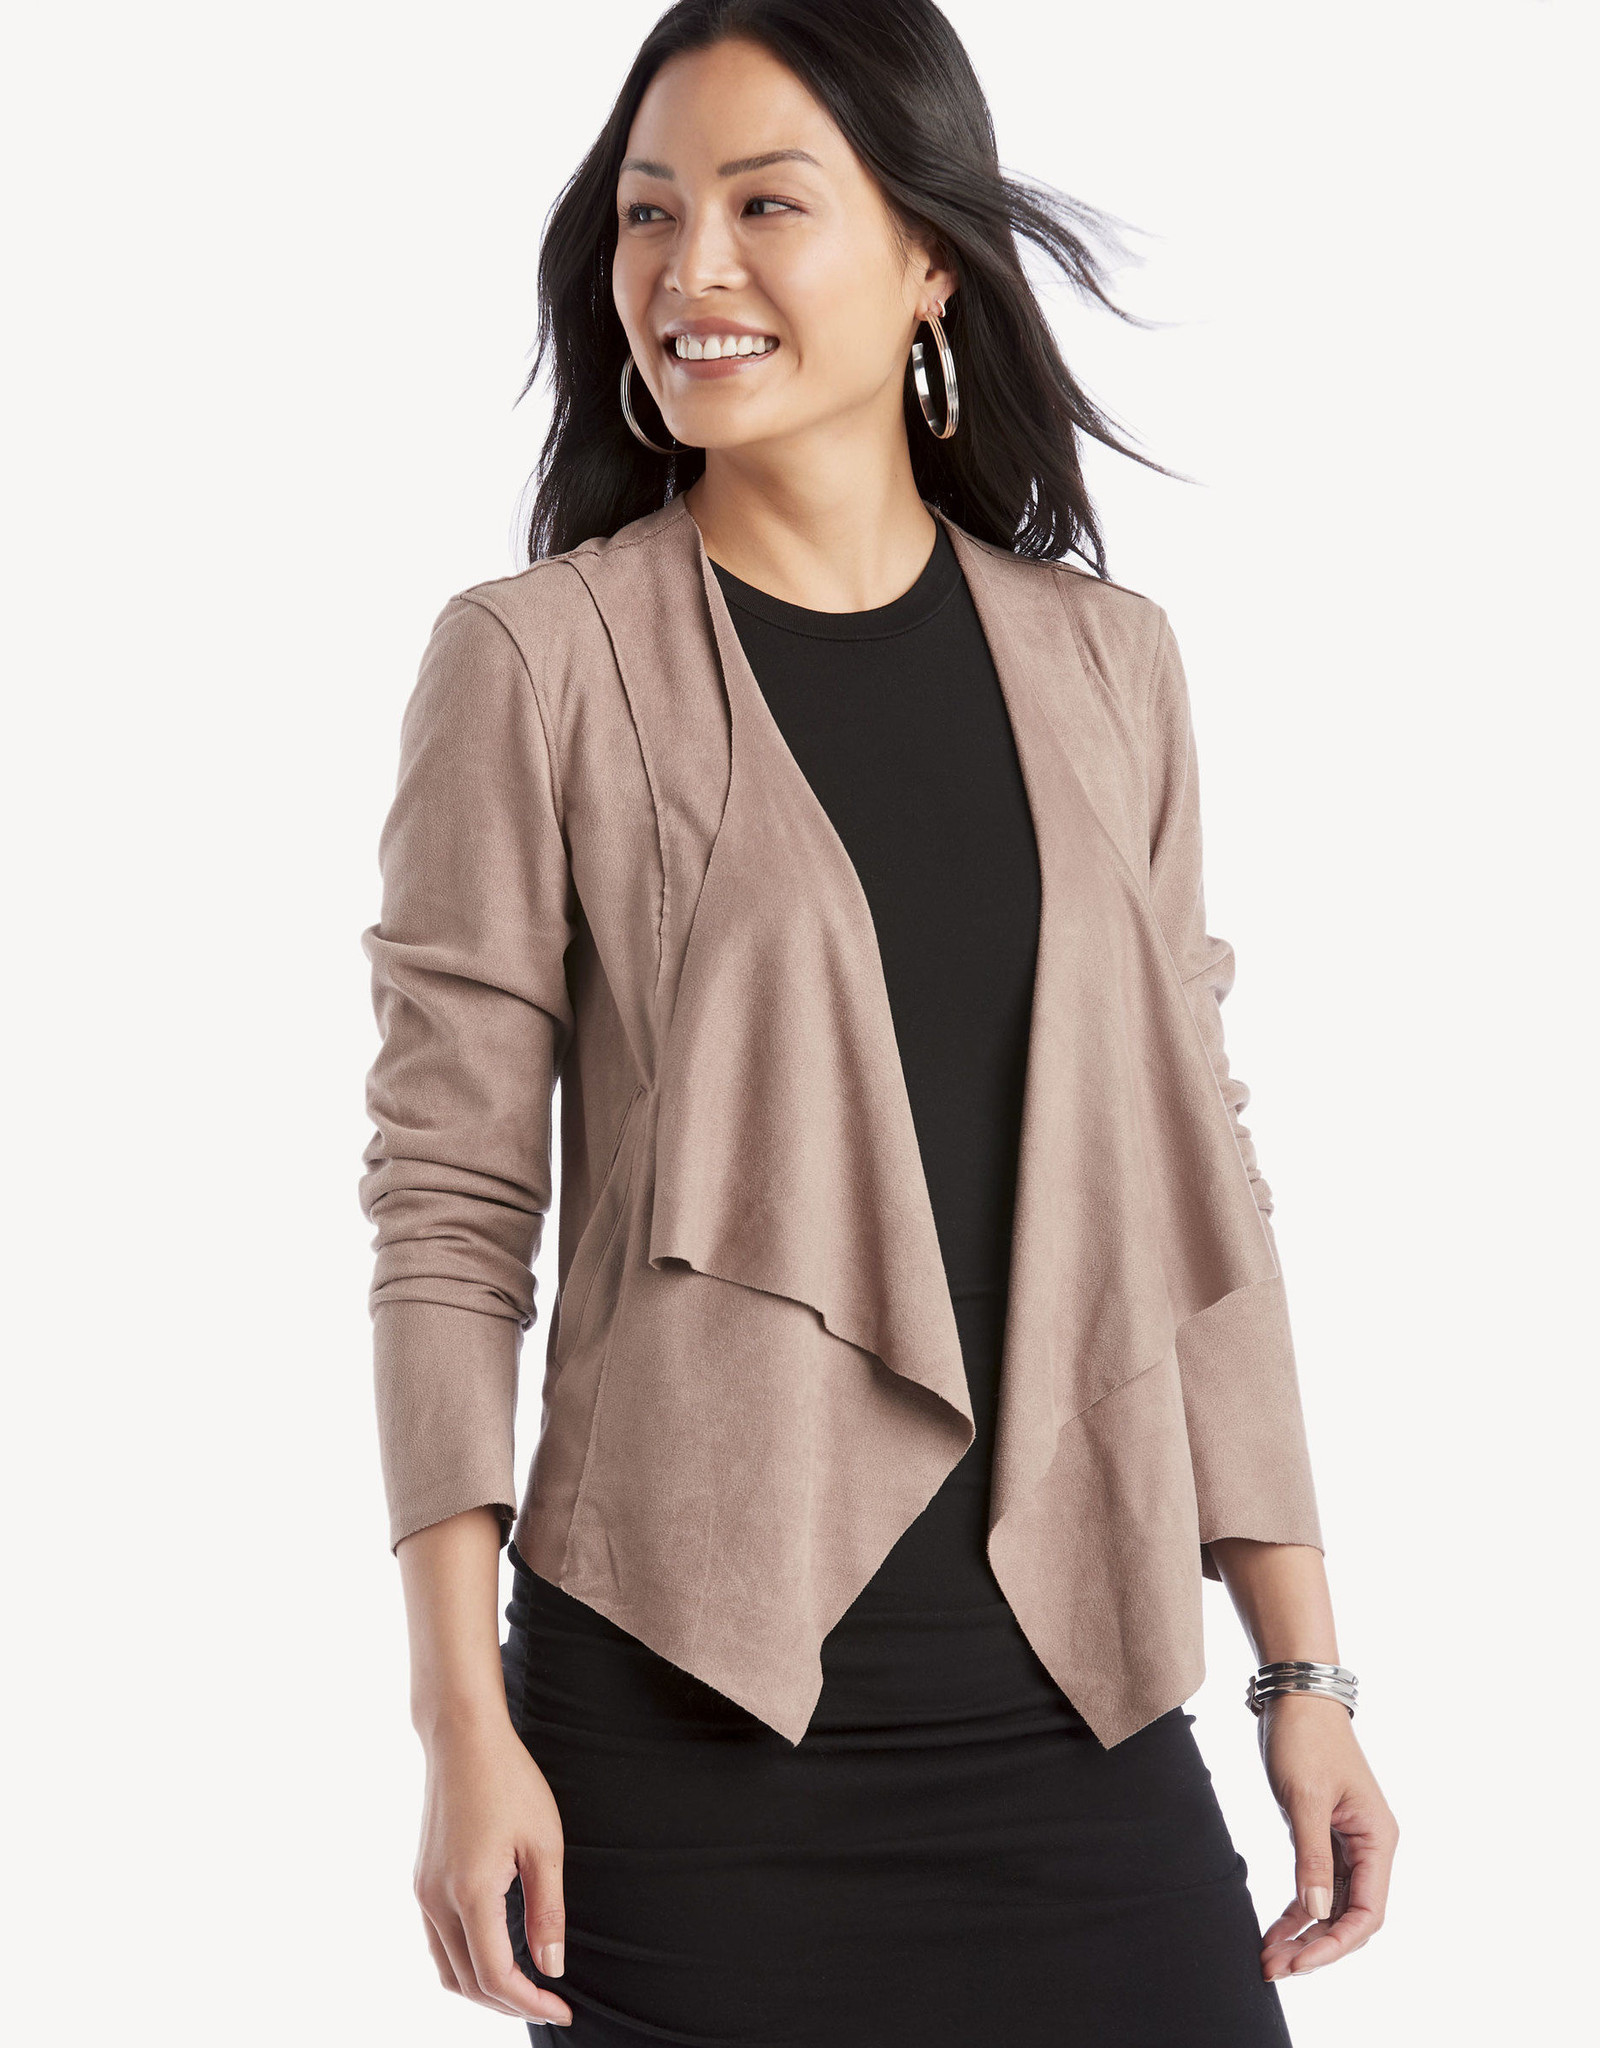 BlankNYC Blank NYC No Shame Drape Front Jacket in Taupe